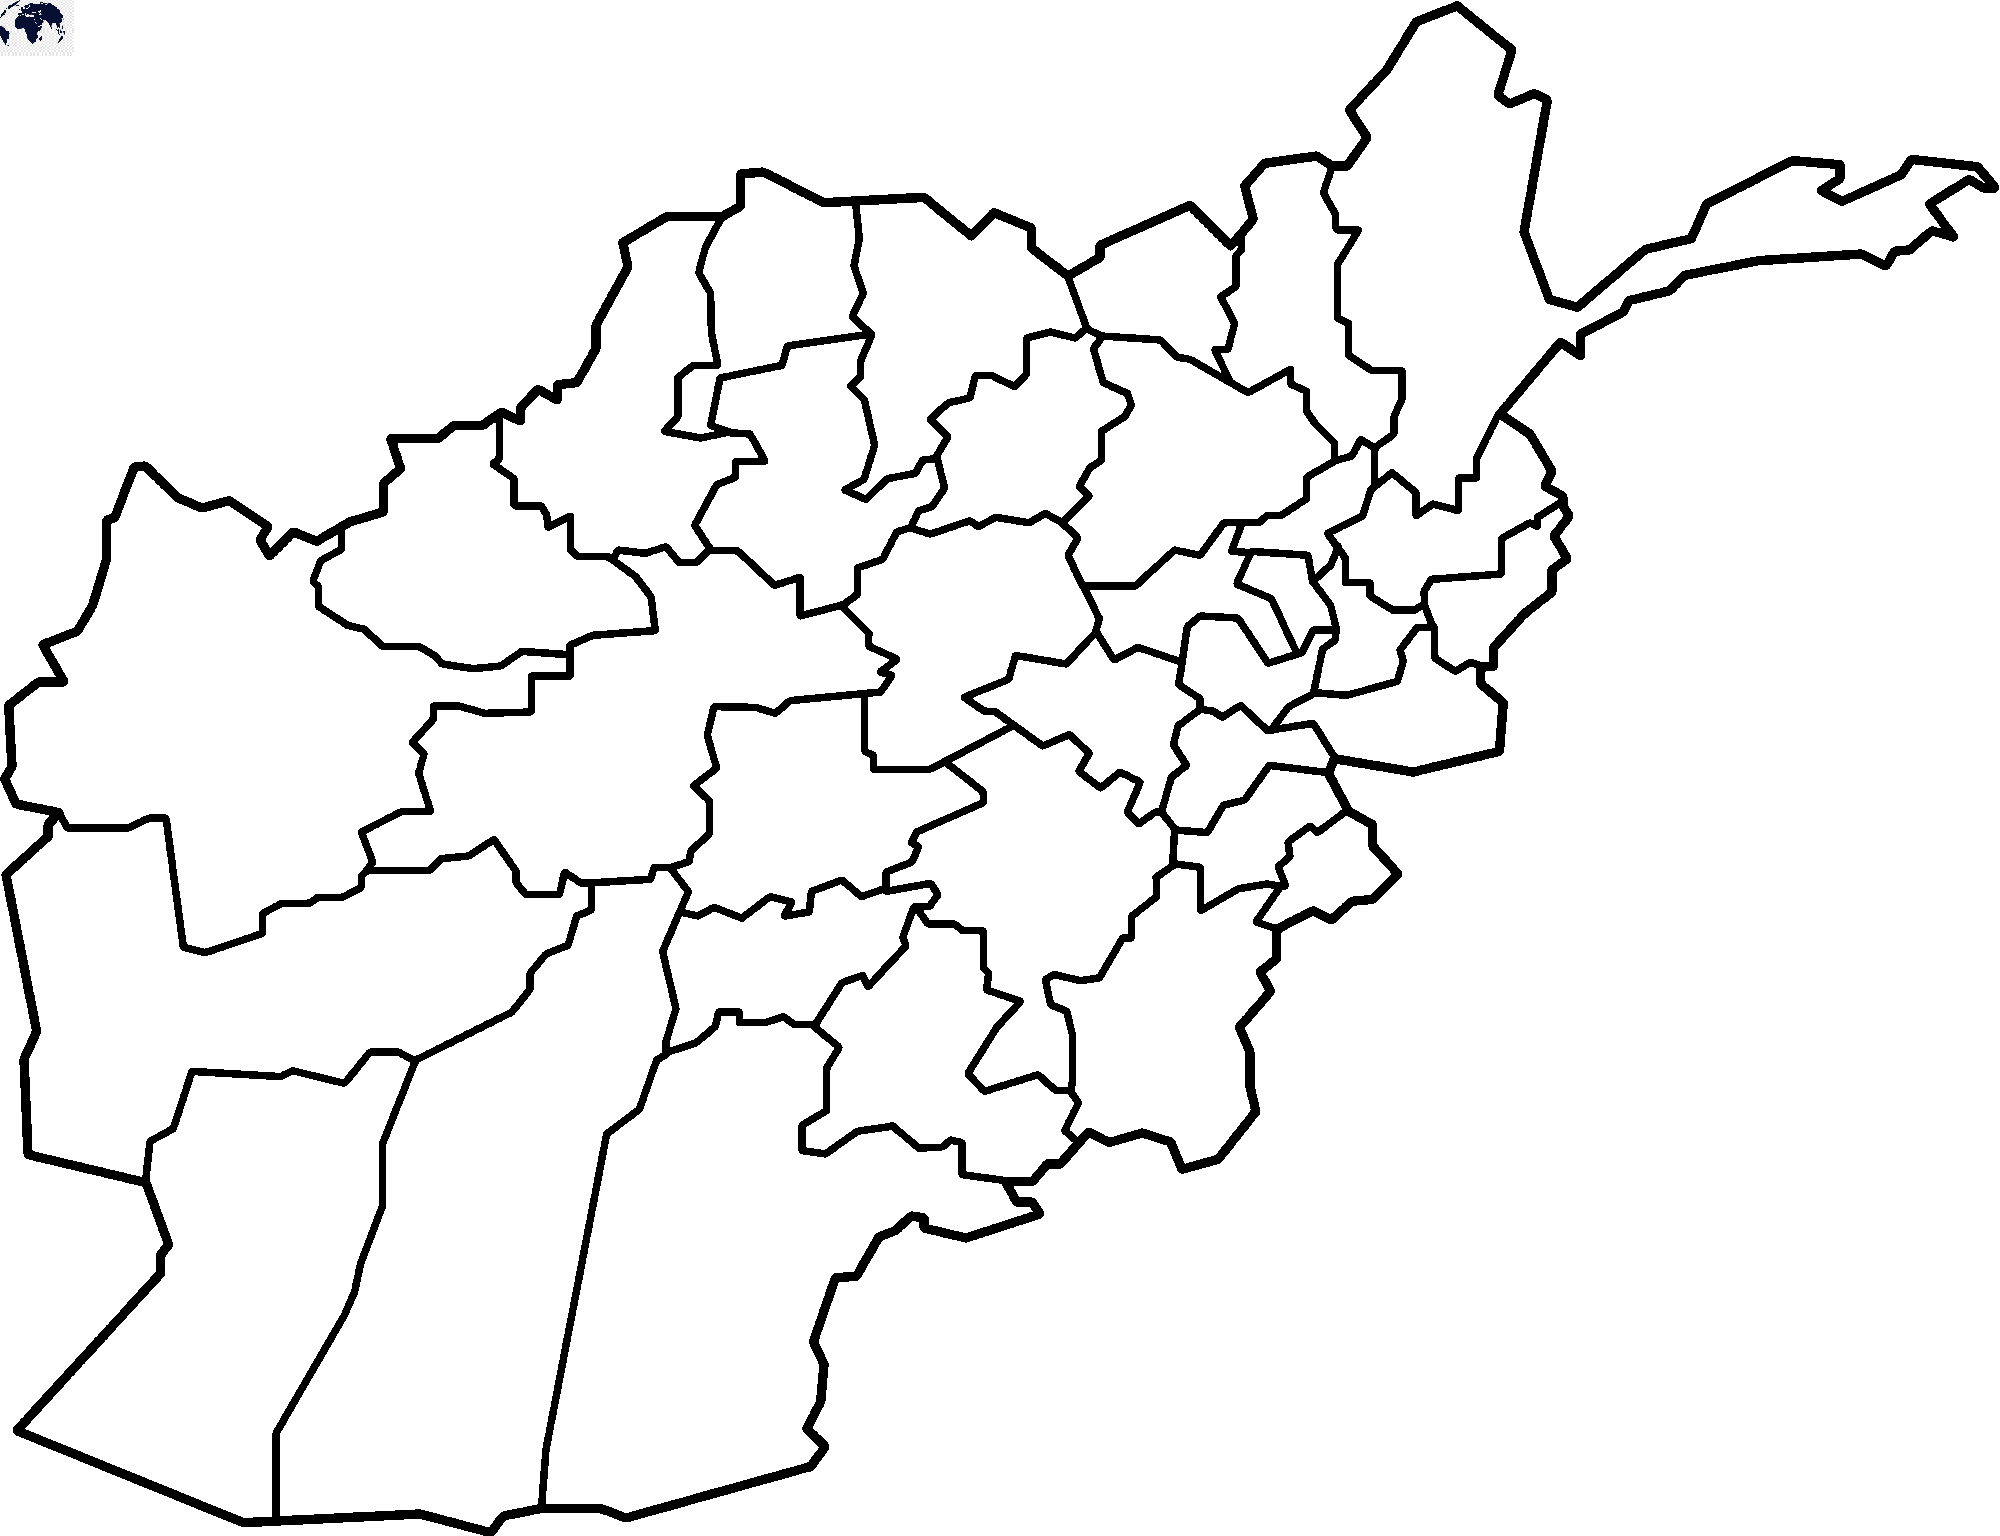 Map of Afghanistan for Practice Worksheet